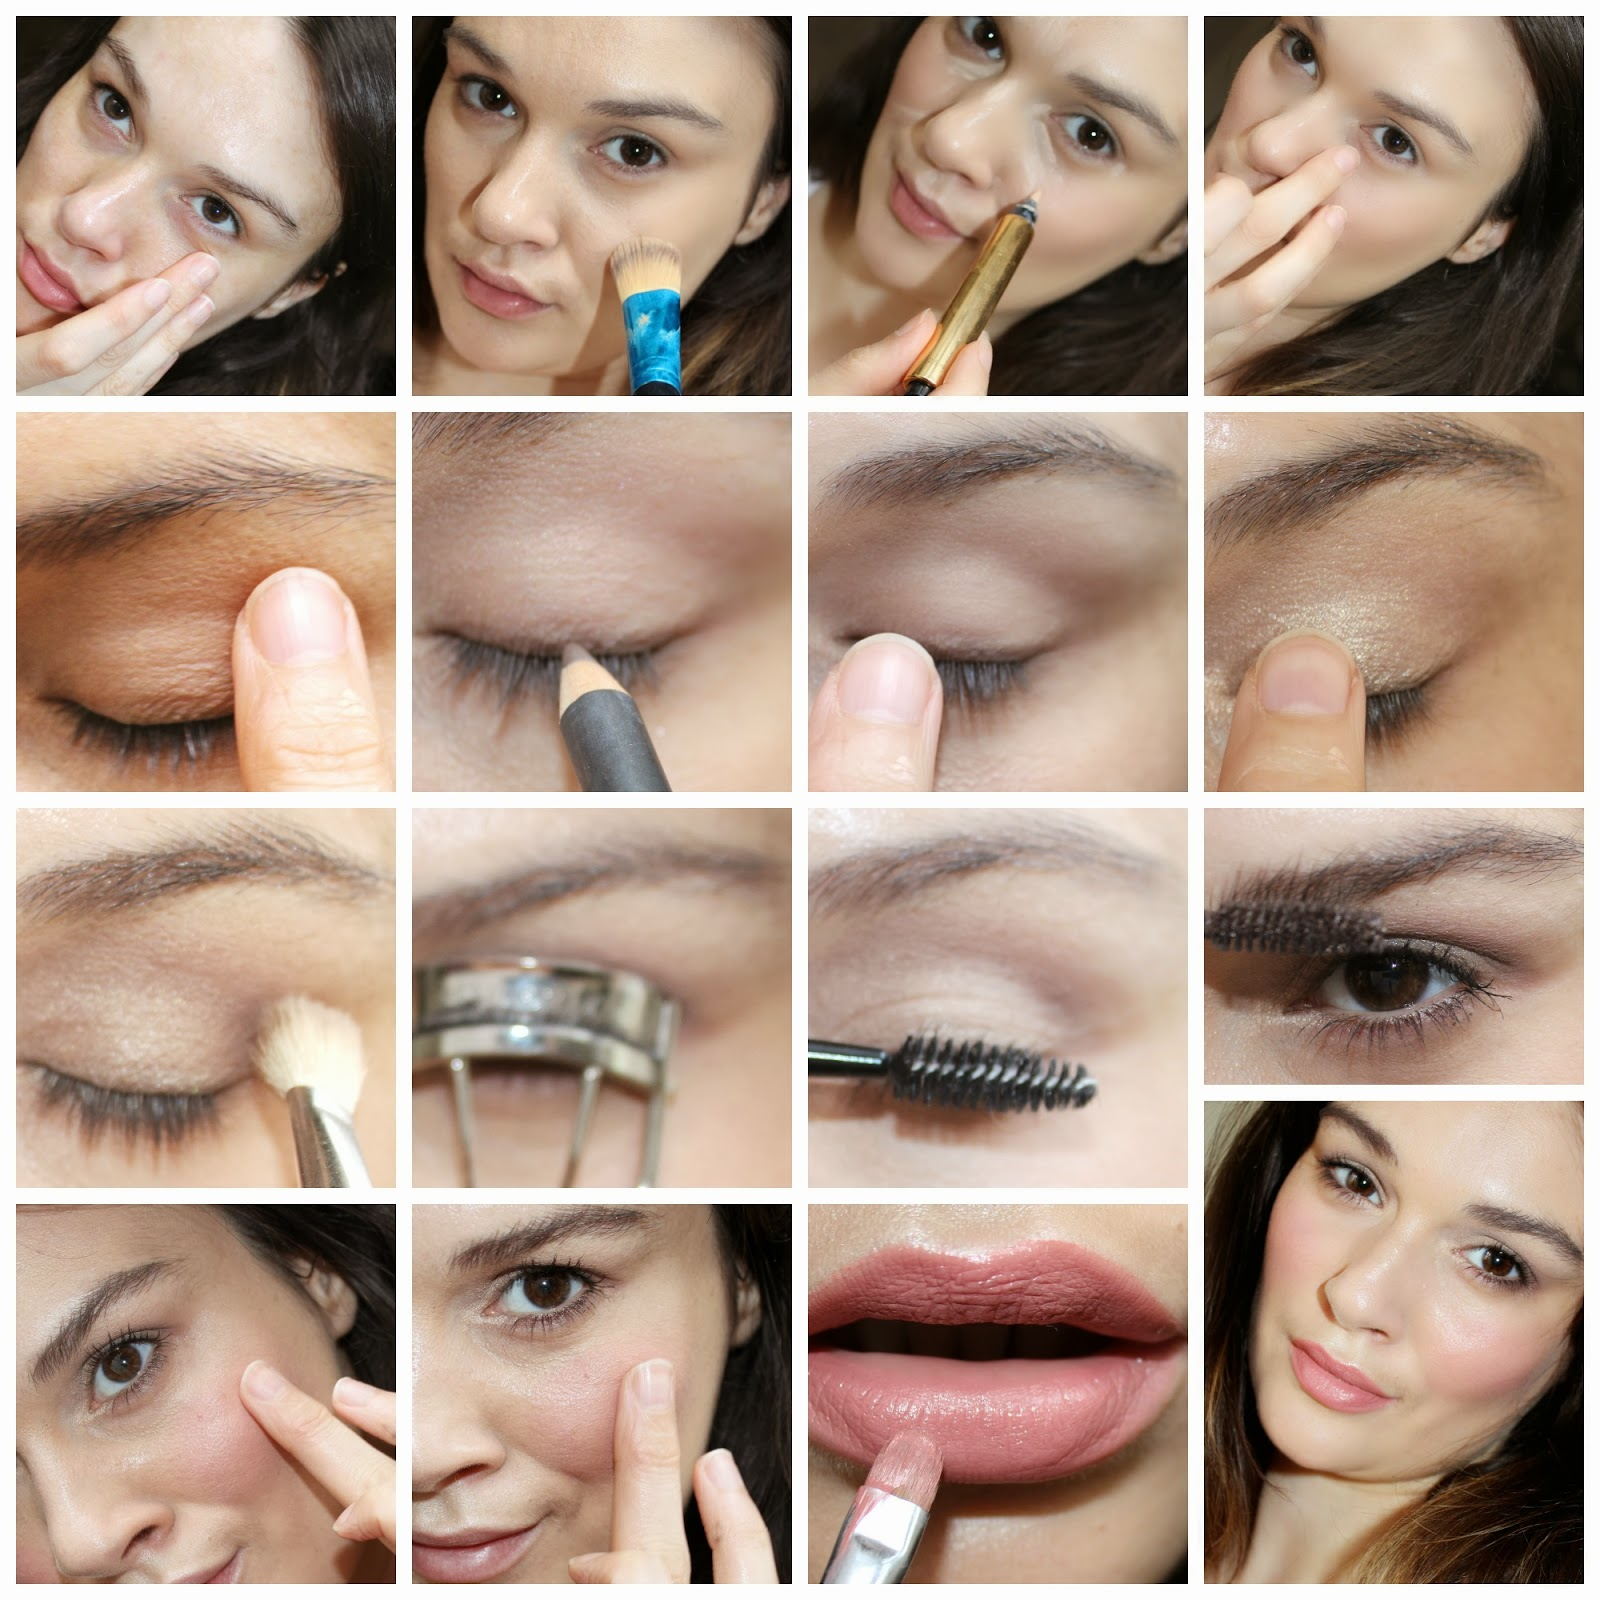 How To Apply Face Makeup Step By Step With Pictures In